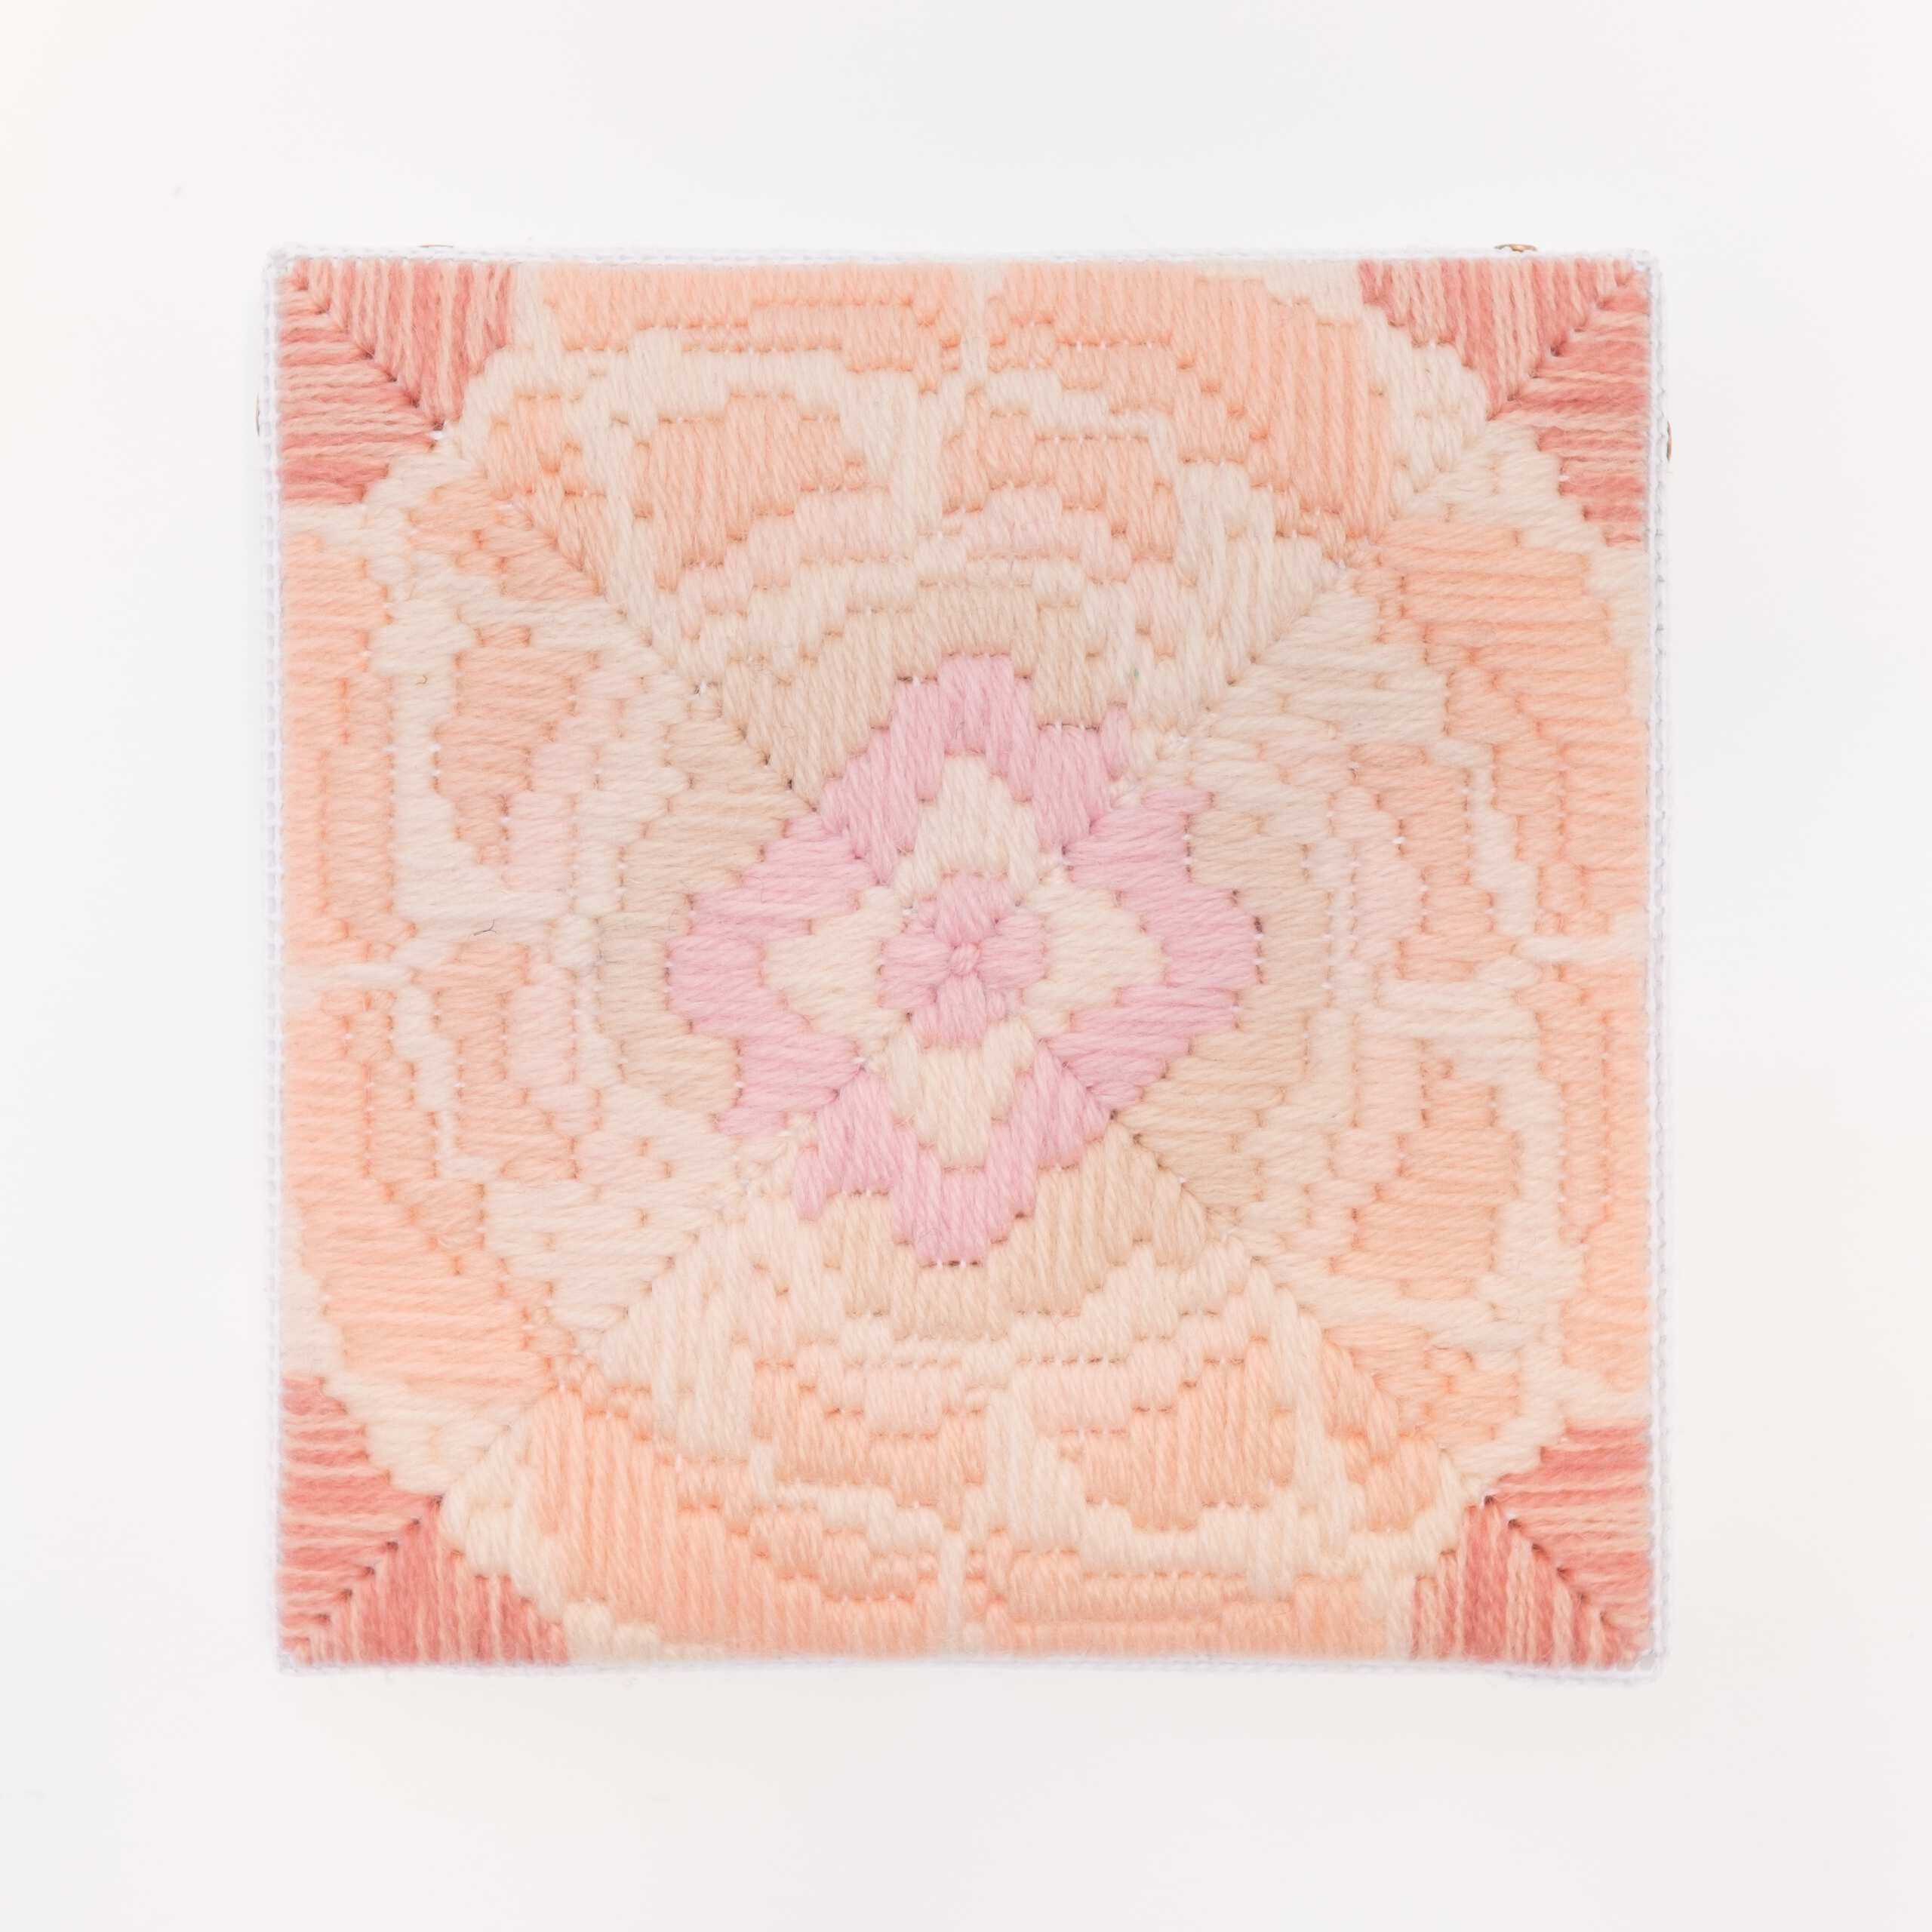 Depression Era [cast glass, peach], Hand-embroidered wool on canvas over panel, 2020